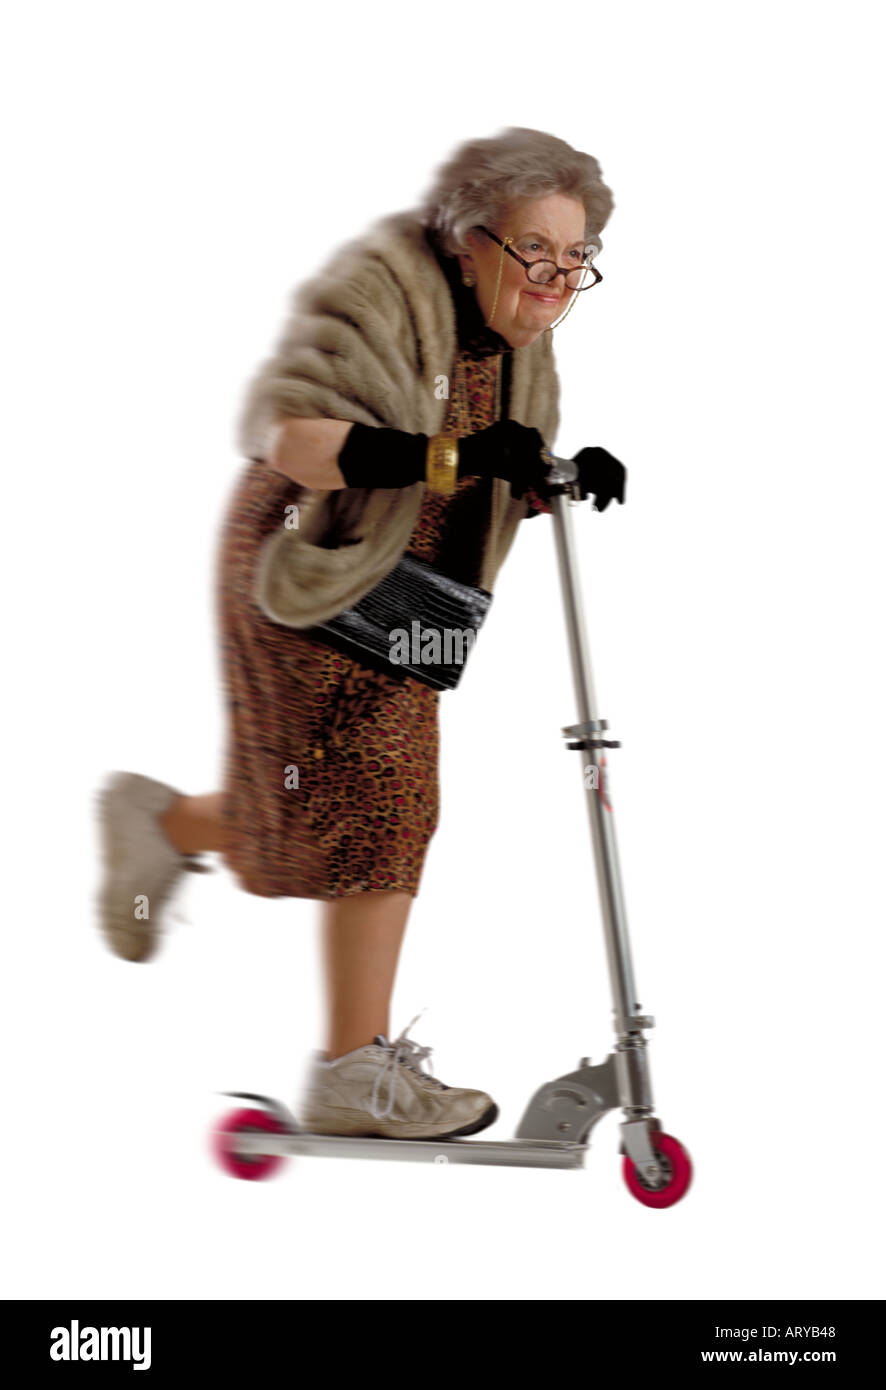 Humerous image of an elderly woman dressed up wearing a fur wrap and riding a scooter - Stock Image